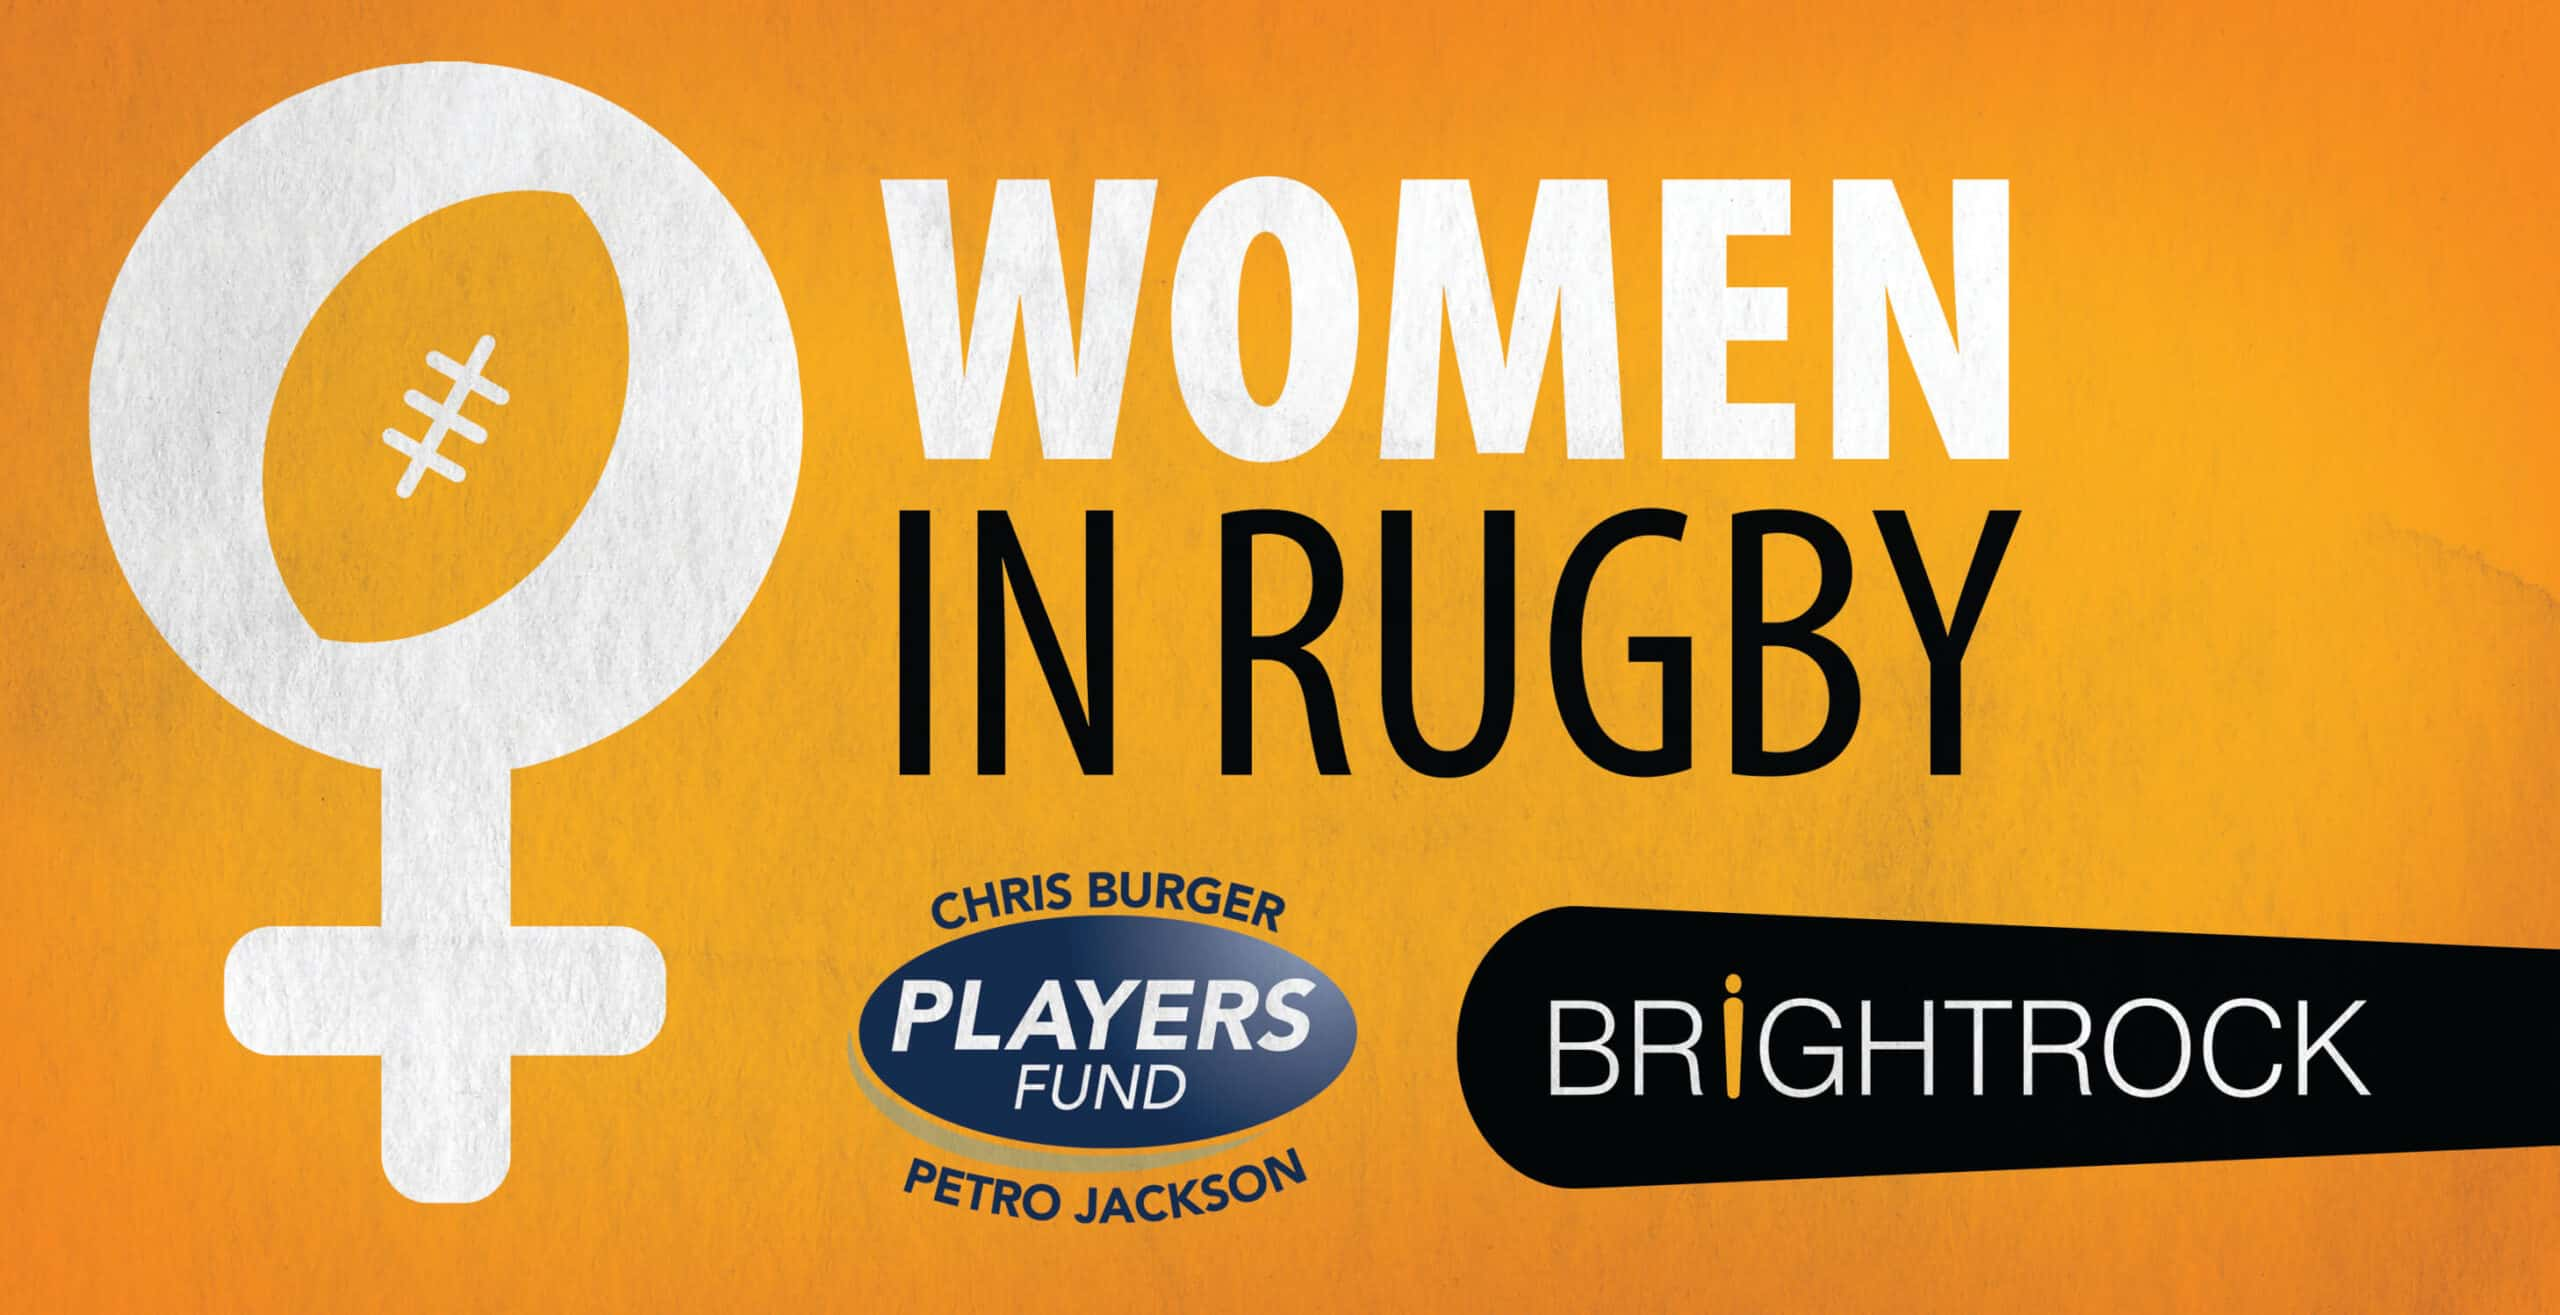 WOMEN IN RUGBY – Webinar series during women's month